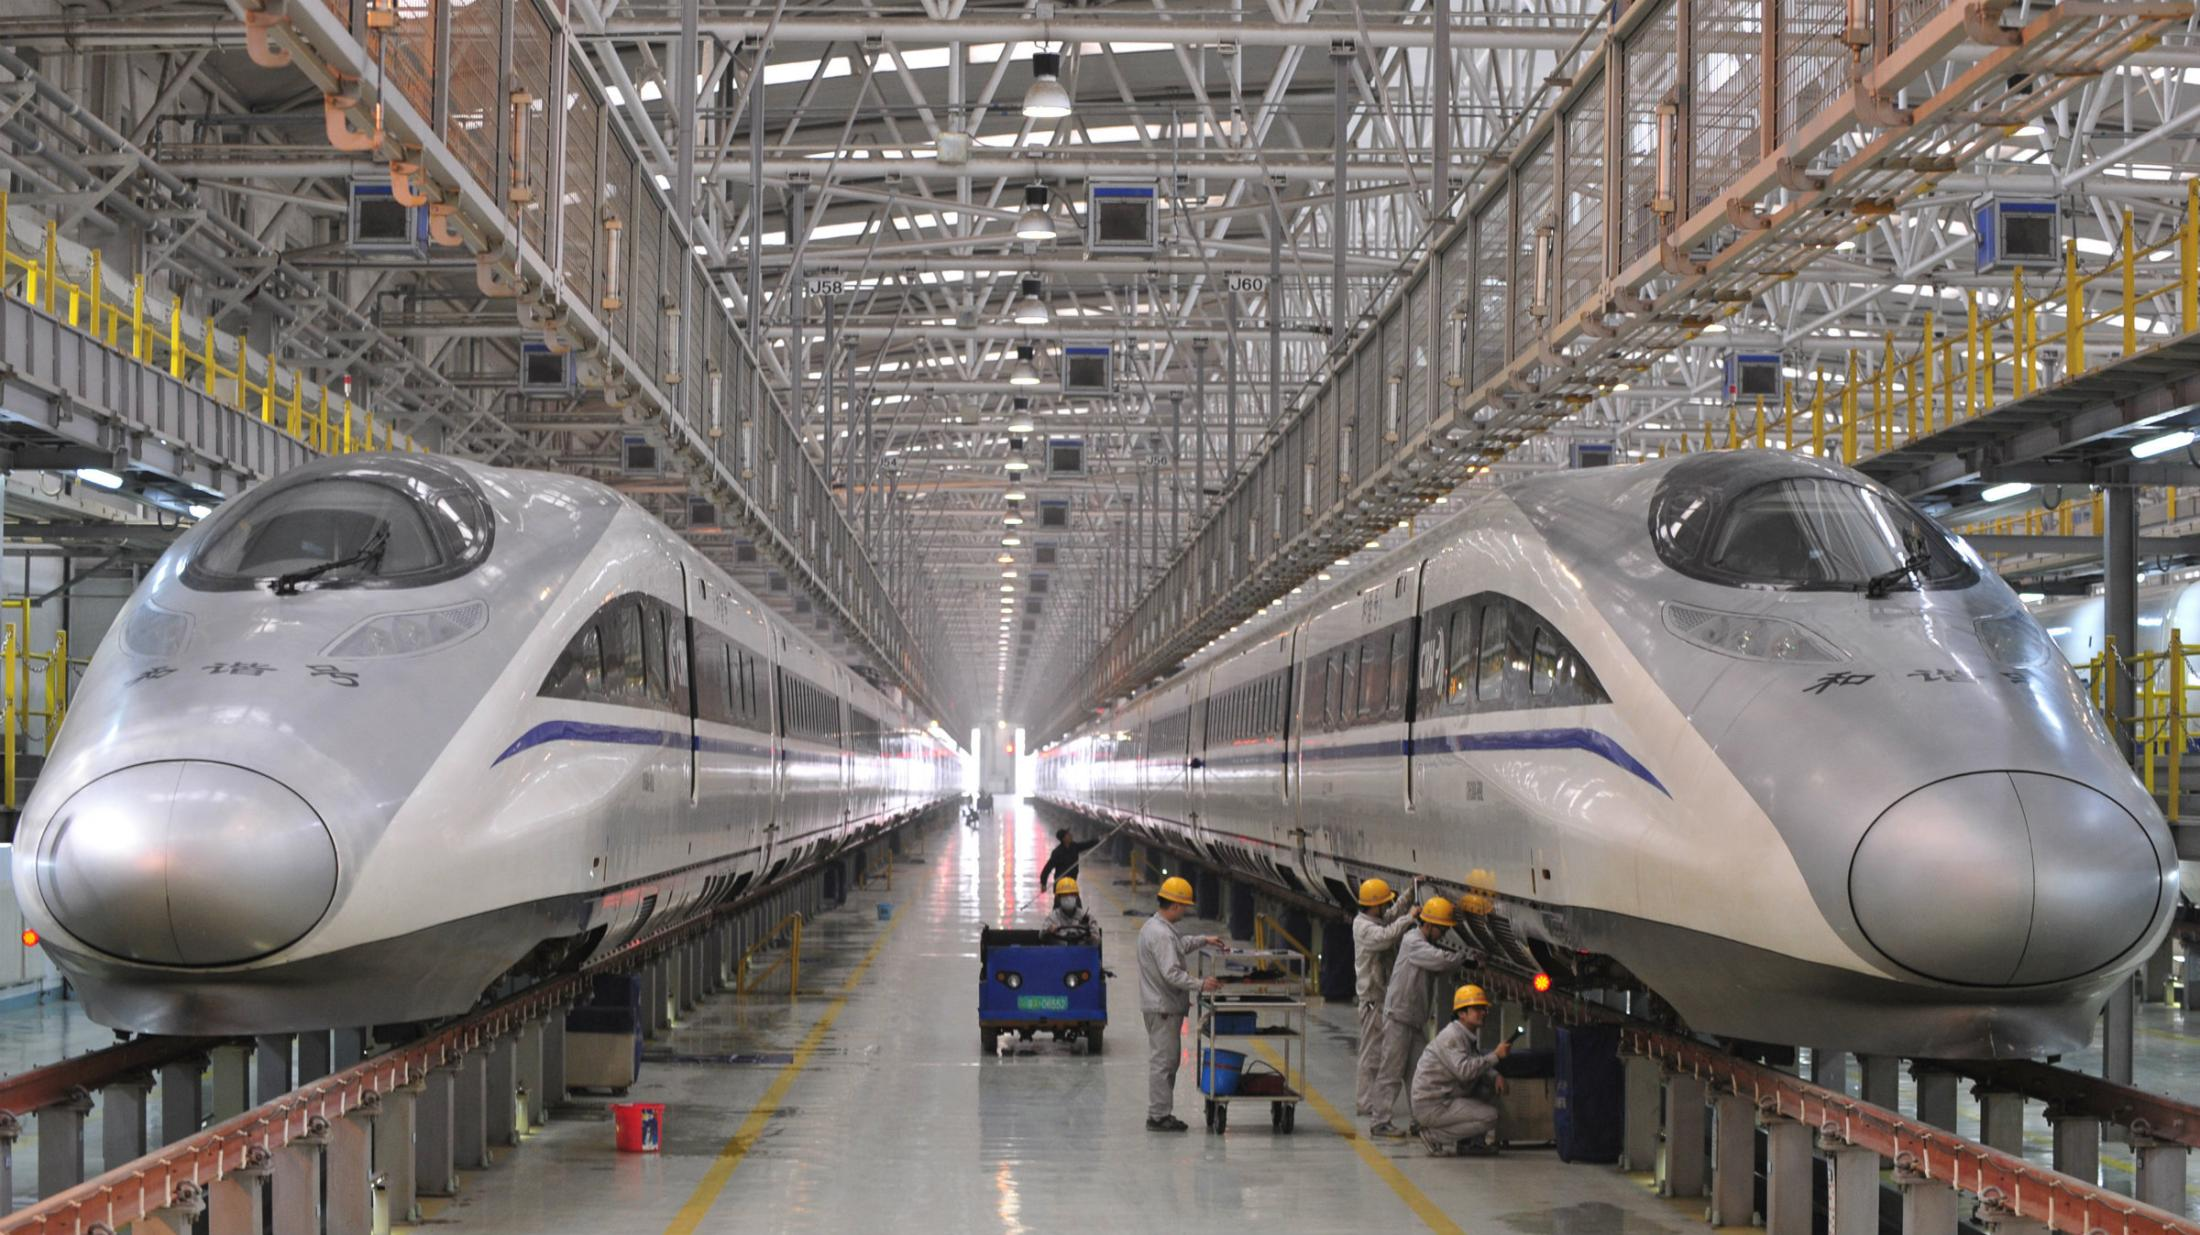 engineering connections bullet train - HD1400×787